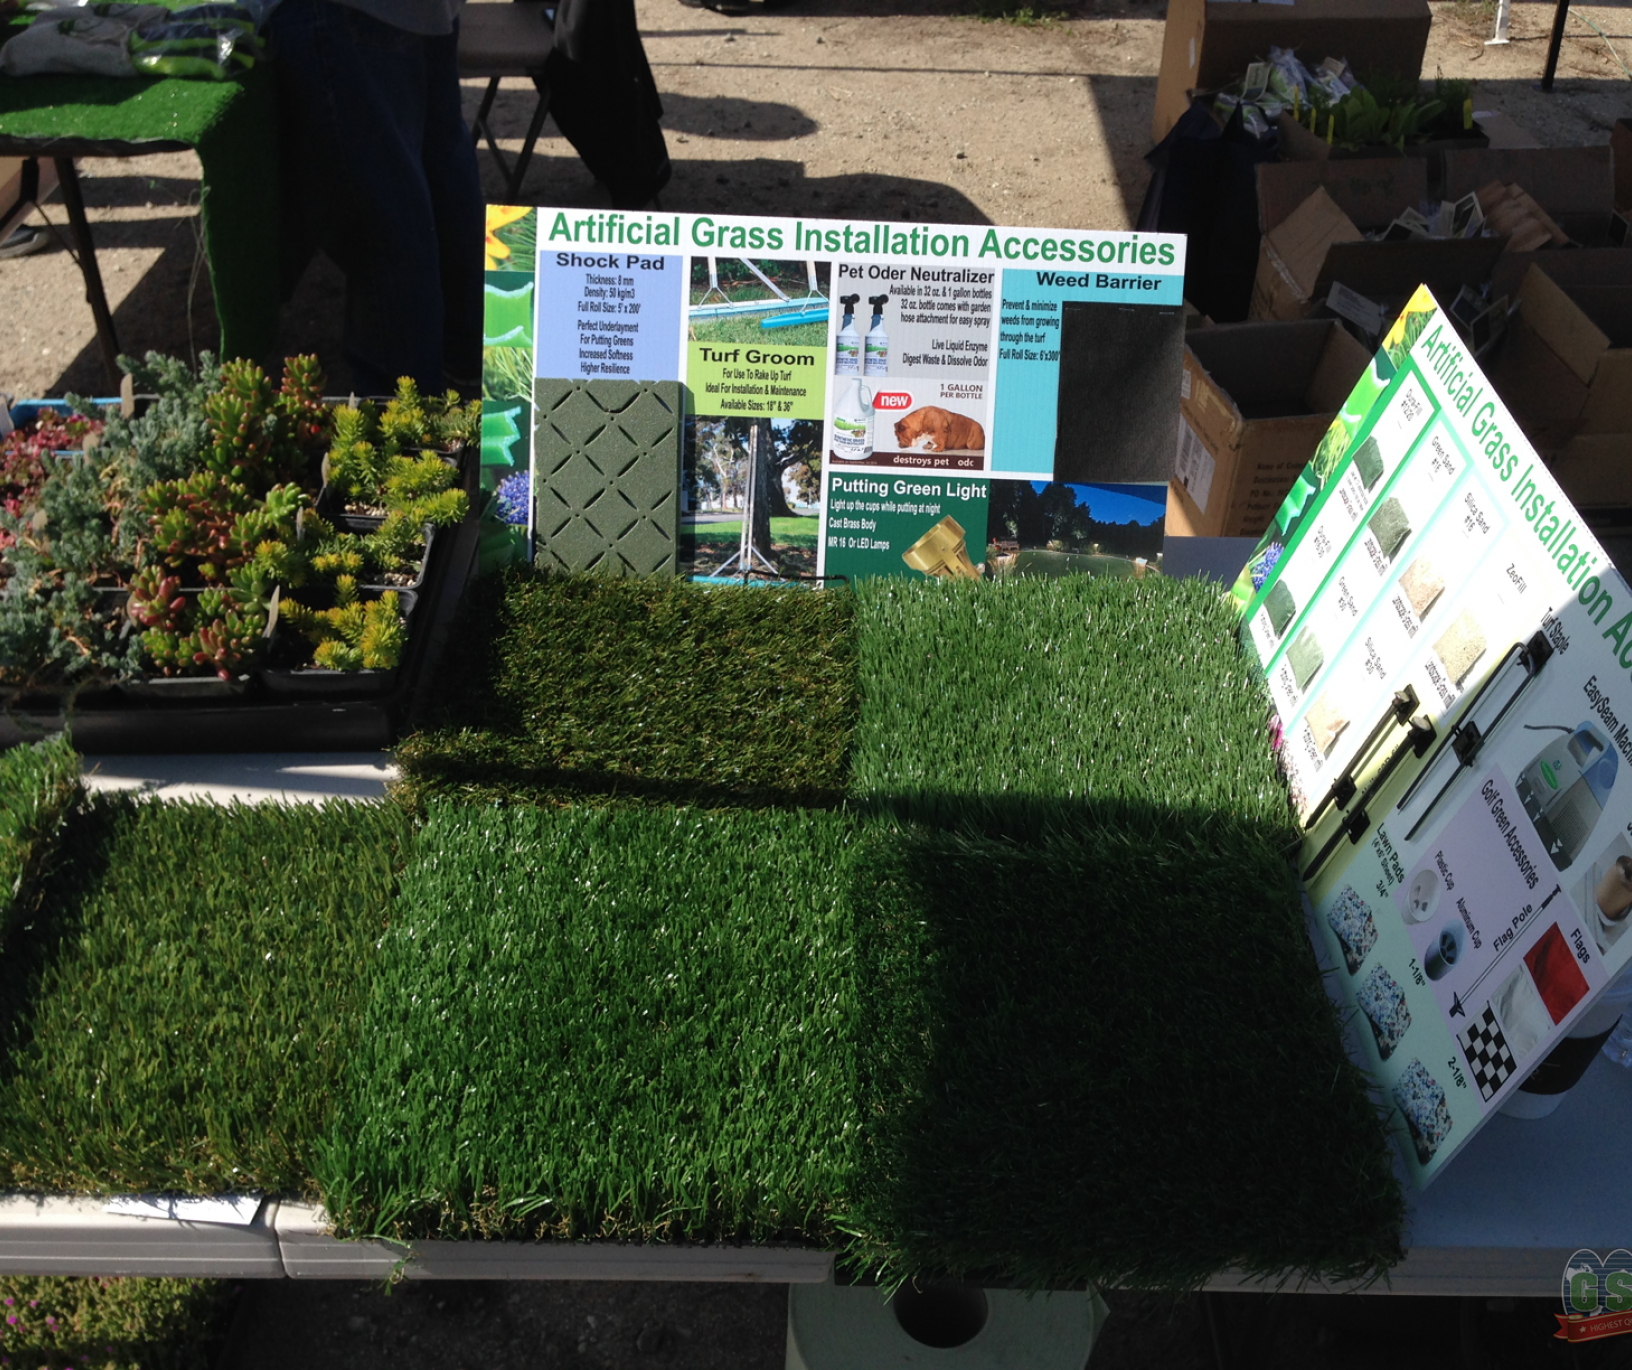 Global Syn-Turf Showcases Drought-Tolerant Products at Carmel Valley Garden Show